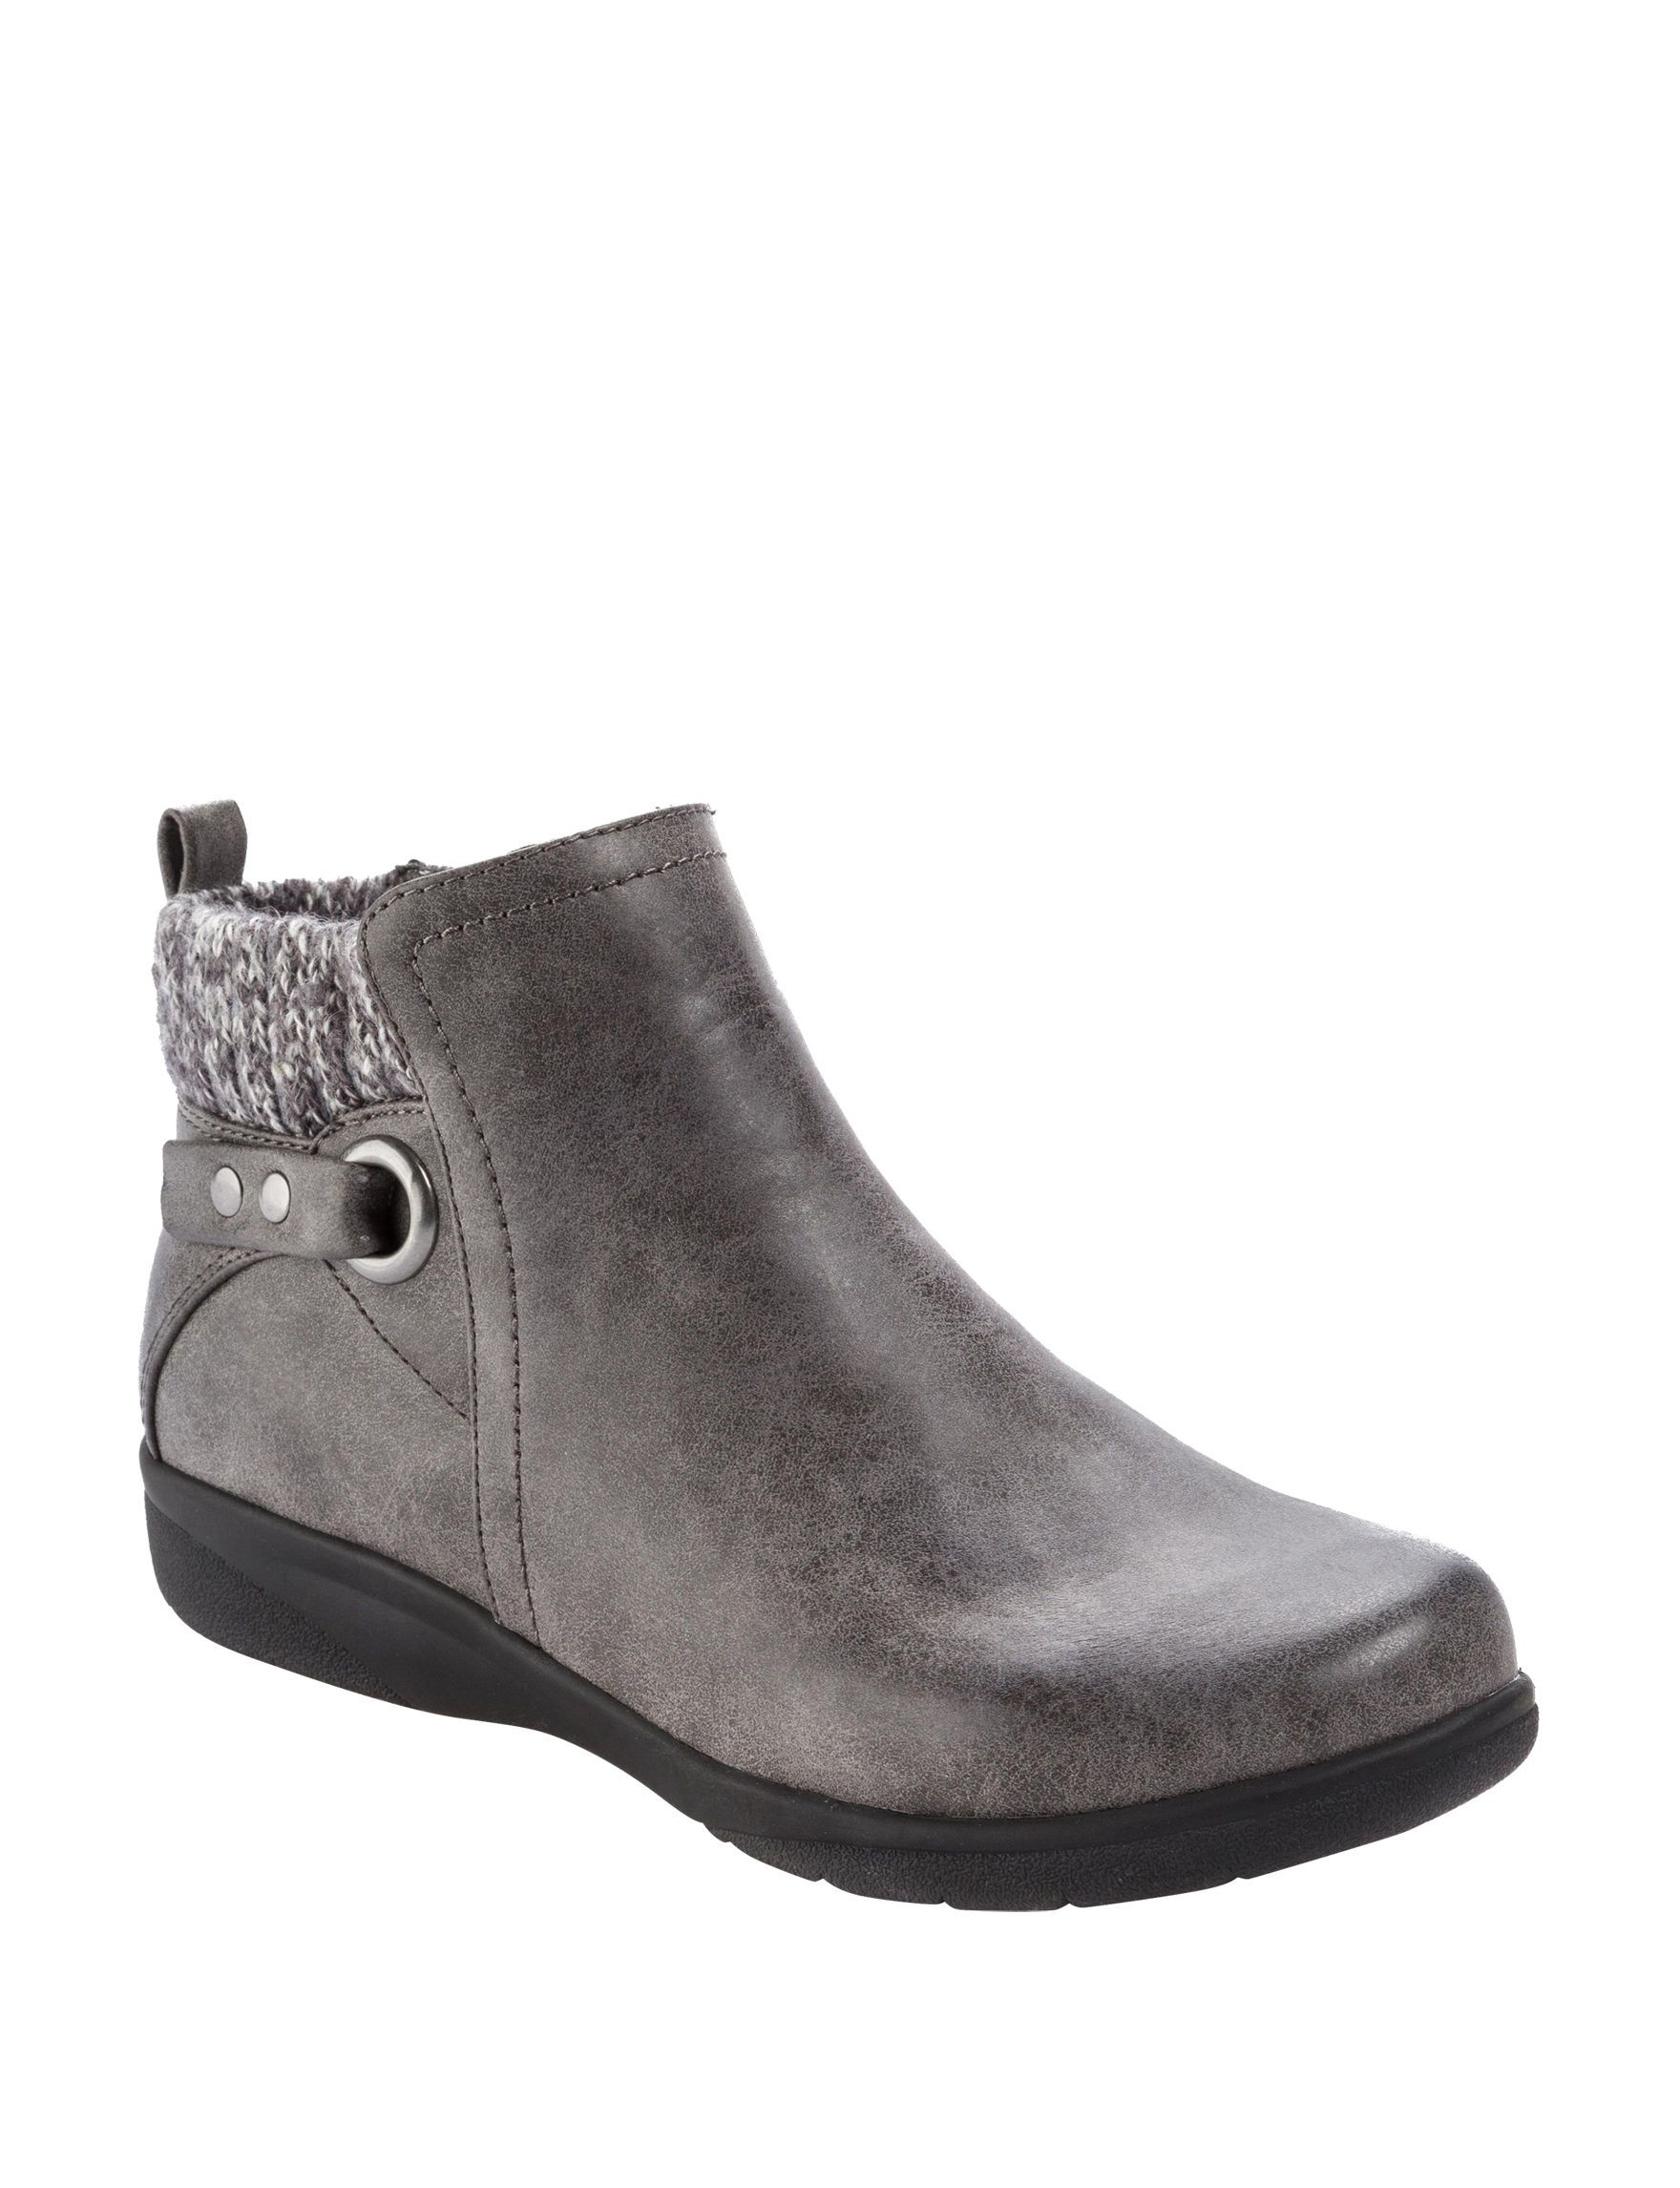 Wear. Ever. Charcoal Ankle Boots & Booties